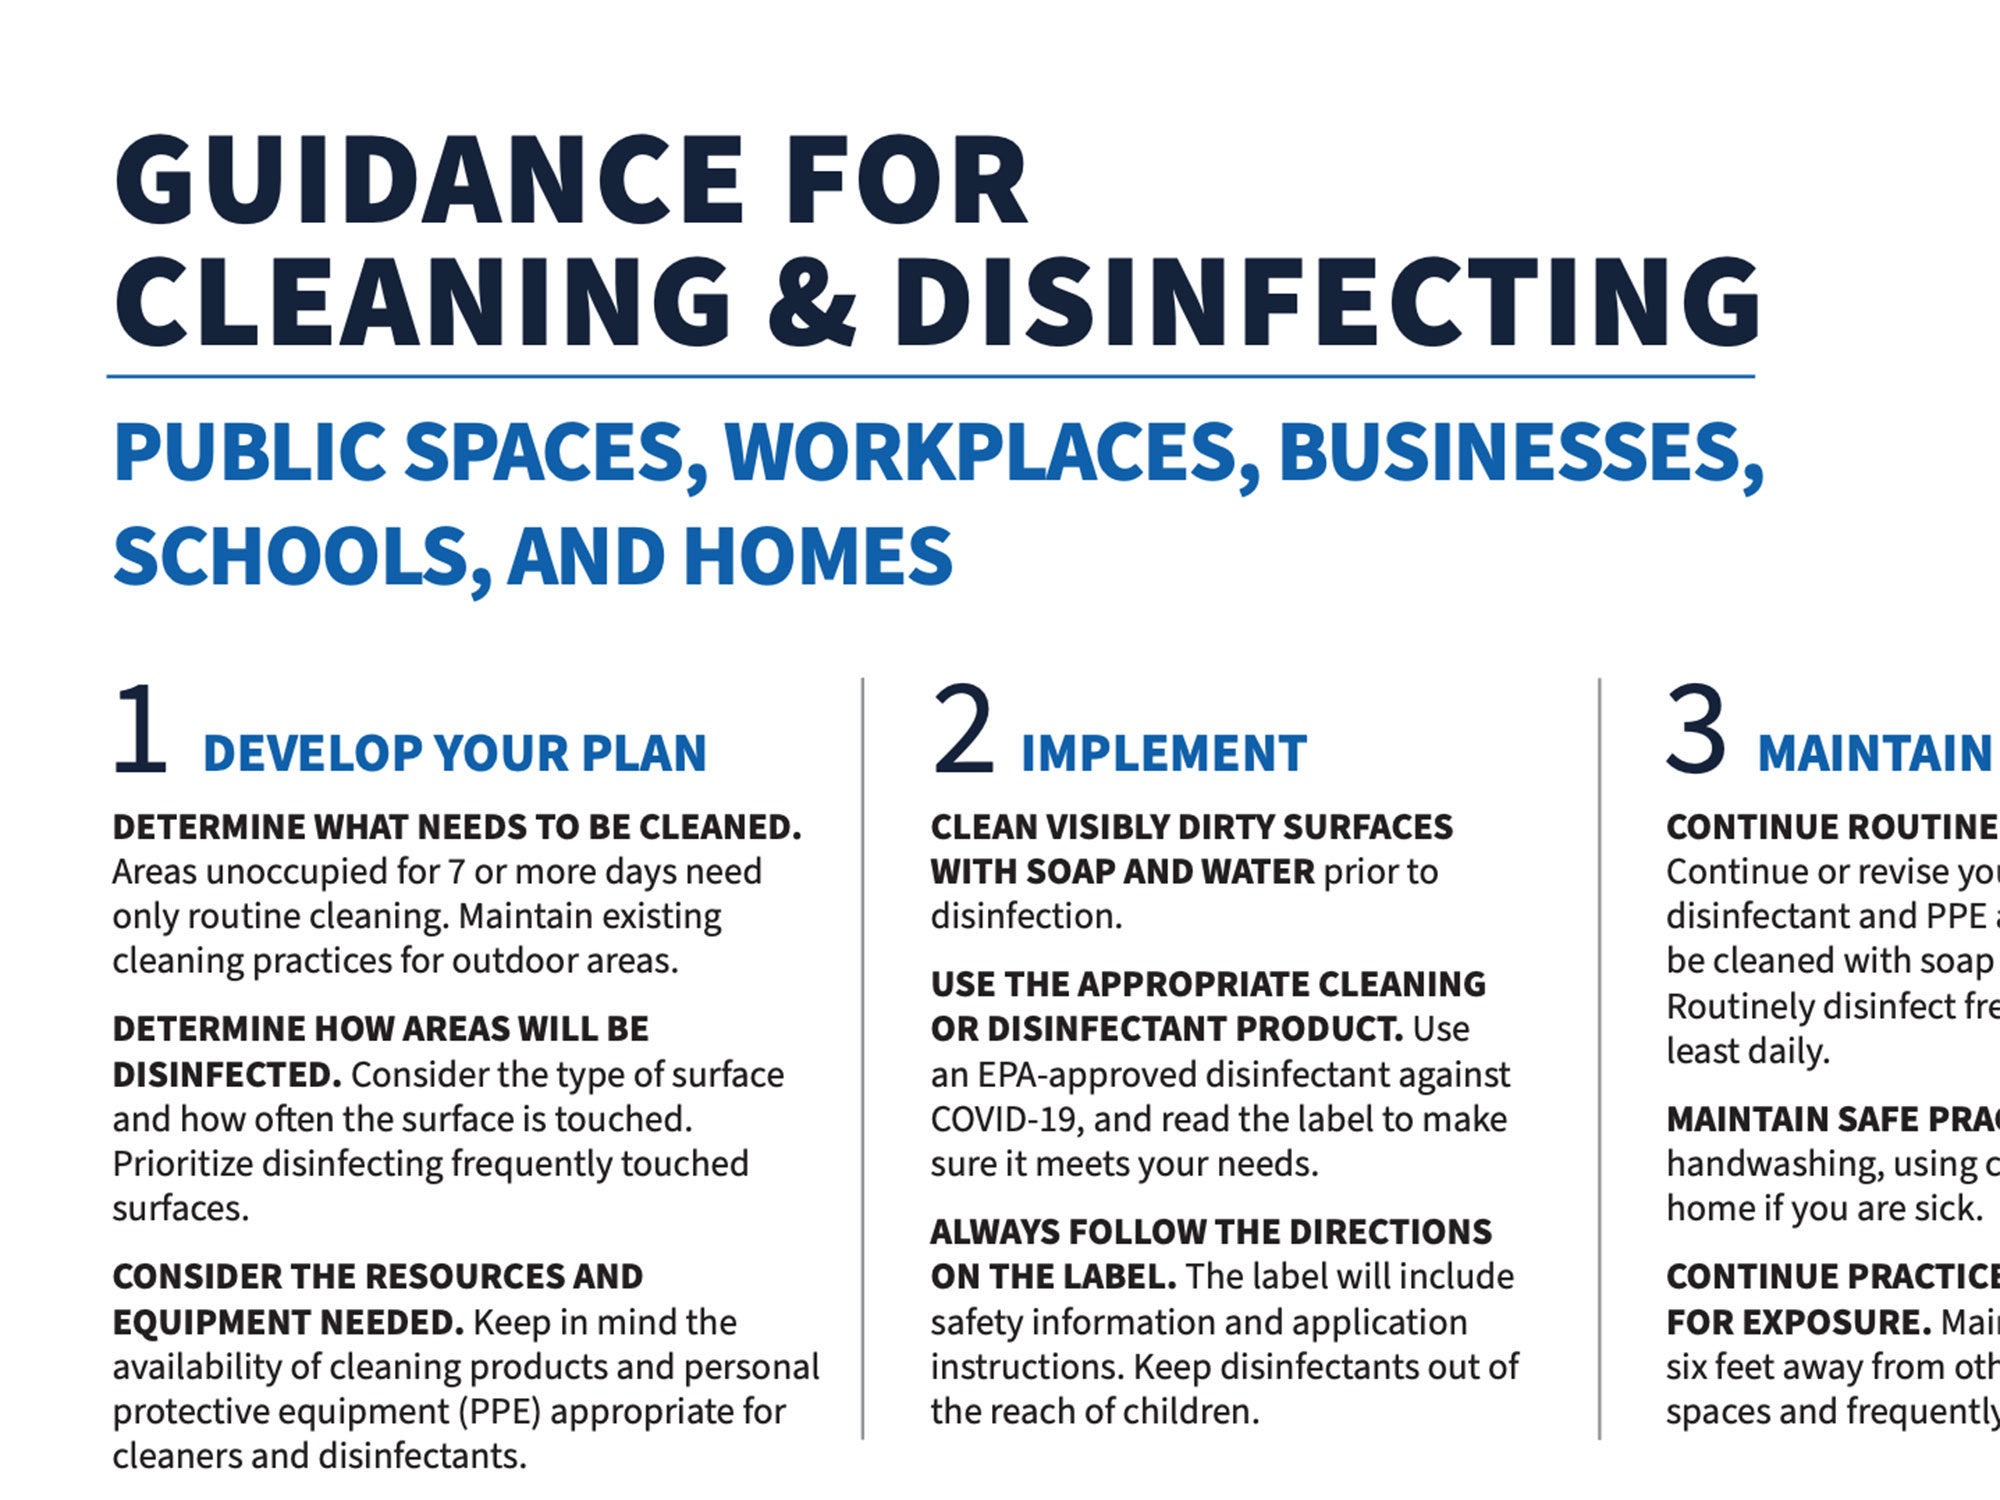 Decision Tool for Cleaning and Disinfecting